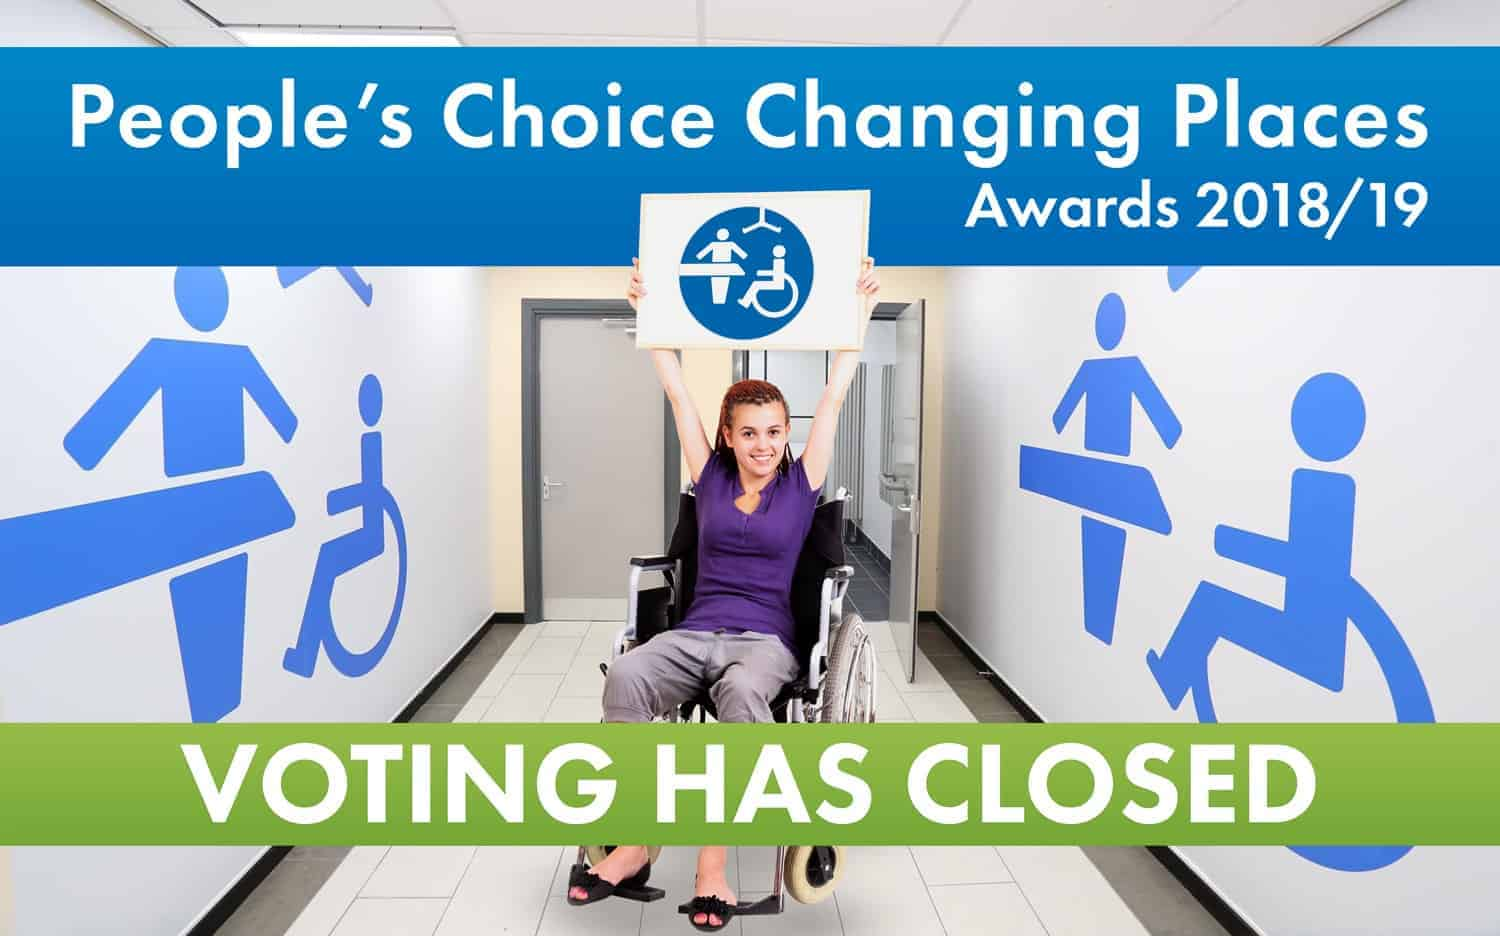 People's Choice Changing Places Awards 2018/19 - Voting now open!